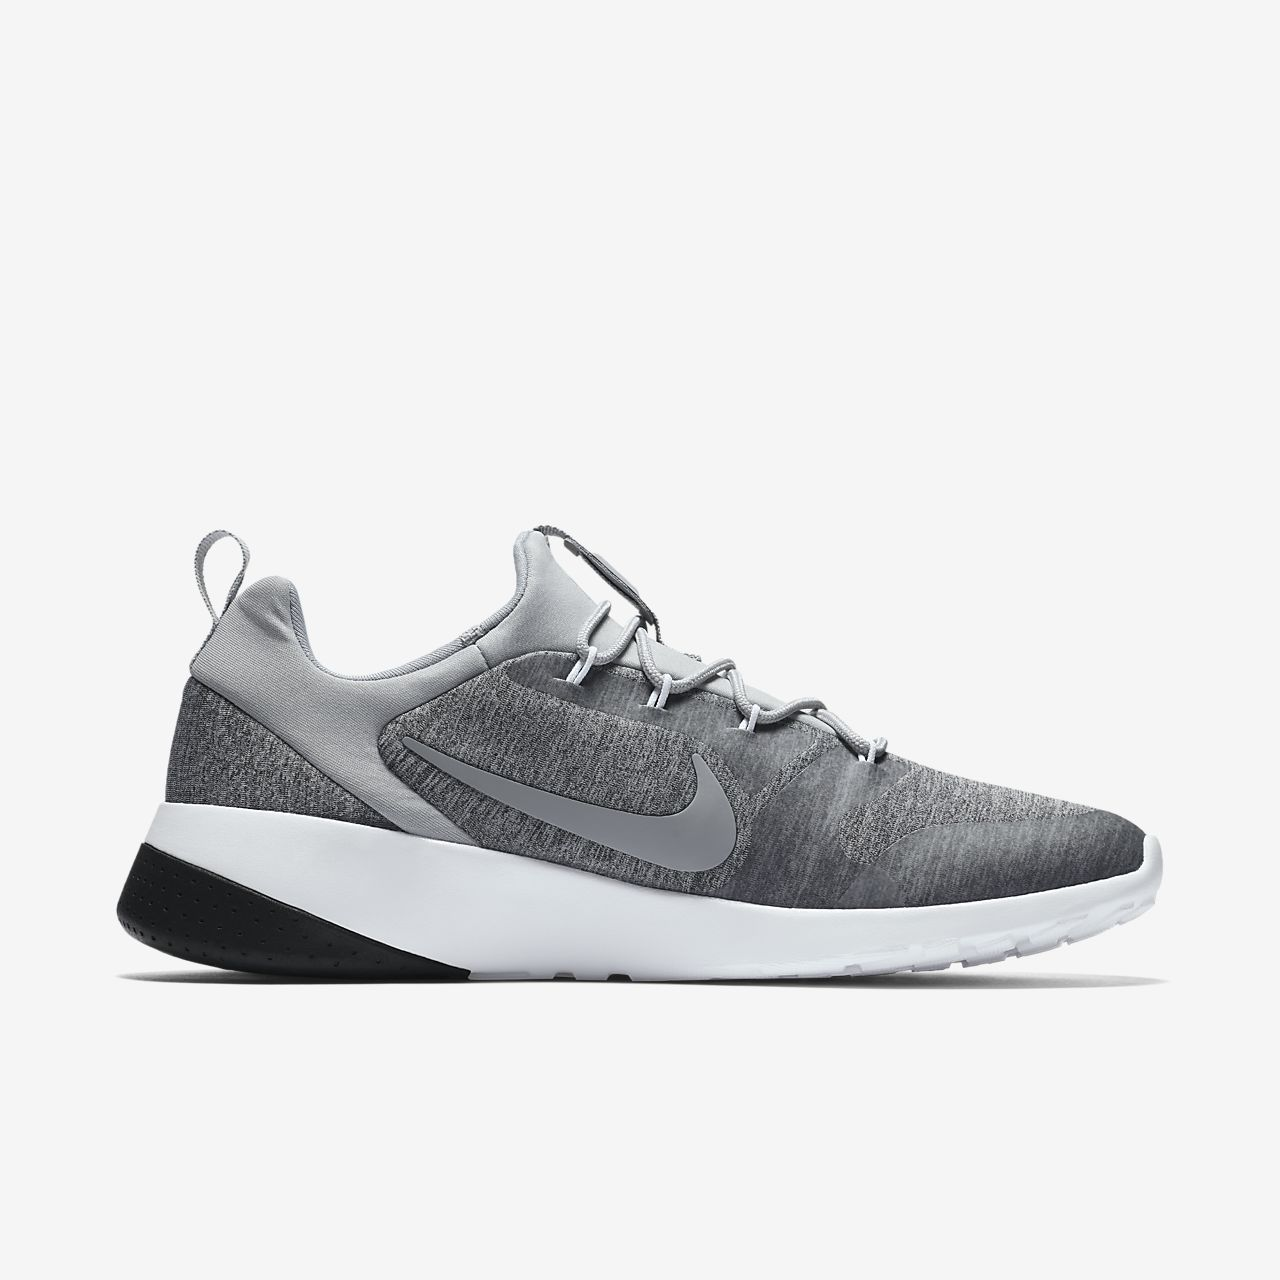 ... Nike CK Racer Men's Shoe